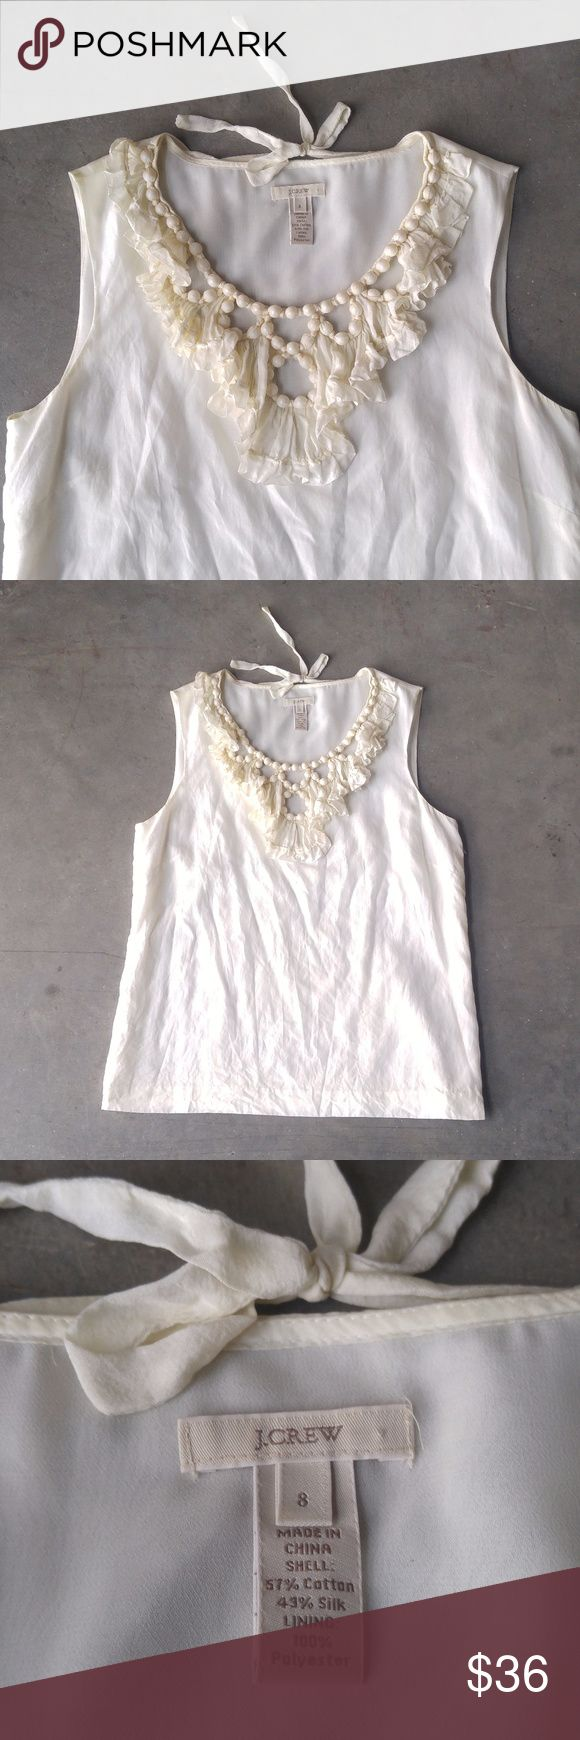 J. Crew Ivory Bead Embellished Silk Blend Tank J. Crew sleeveless blouse, size 8 (medium), in excellent condition! Color is an off-white ivory. Two flaws: small fraying on a seam in the back (7th photo) and two pen dot marks on front (8th). Both flaws are hardly noticeable. Fabric covered beads line the yoke/neckline in an intricate, cut-out design. Bow tie detail at back of neck. Size zip, full lining. Pair with a colorful pencil skirt! No trades. No modeling. Make a reasonable offer…